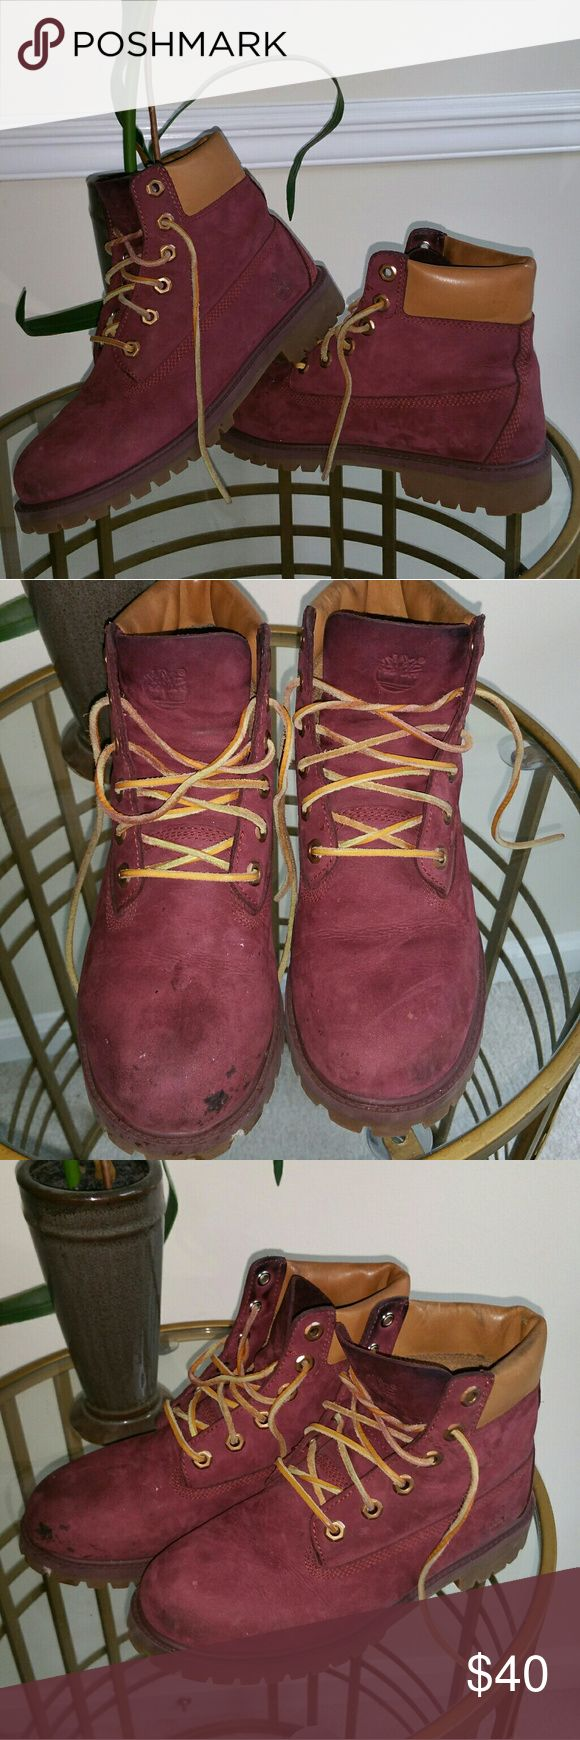 Oxblood Timberland Boots Details: Oxblood Tims trimmed in classic tan leather.   Condition: Good condition. Cleaning would be needed as there is a stain on left shoe on top along with with small stains on both boots. Nothing a good cleaning can't fix. Price reflects As-Is sale.  Please ask any questions that you may have or request additional photos Timberland Shoes Combat & Moto Boots